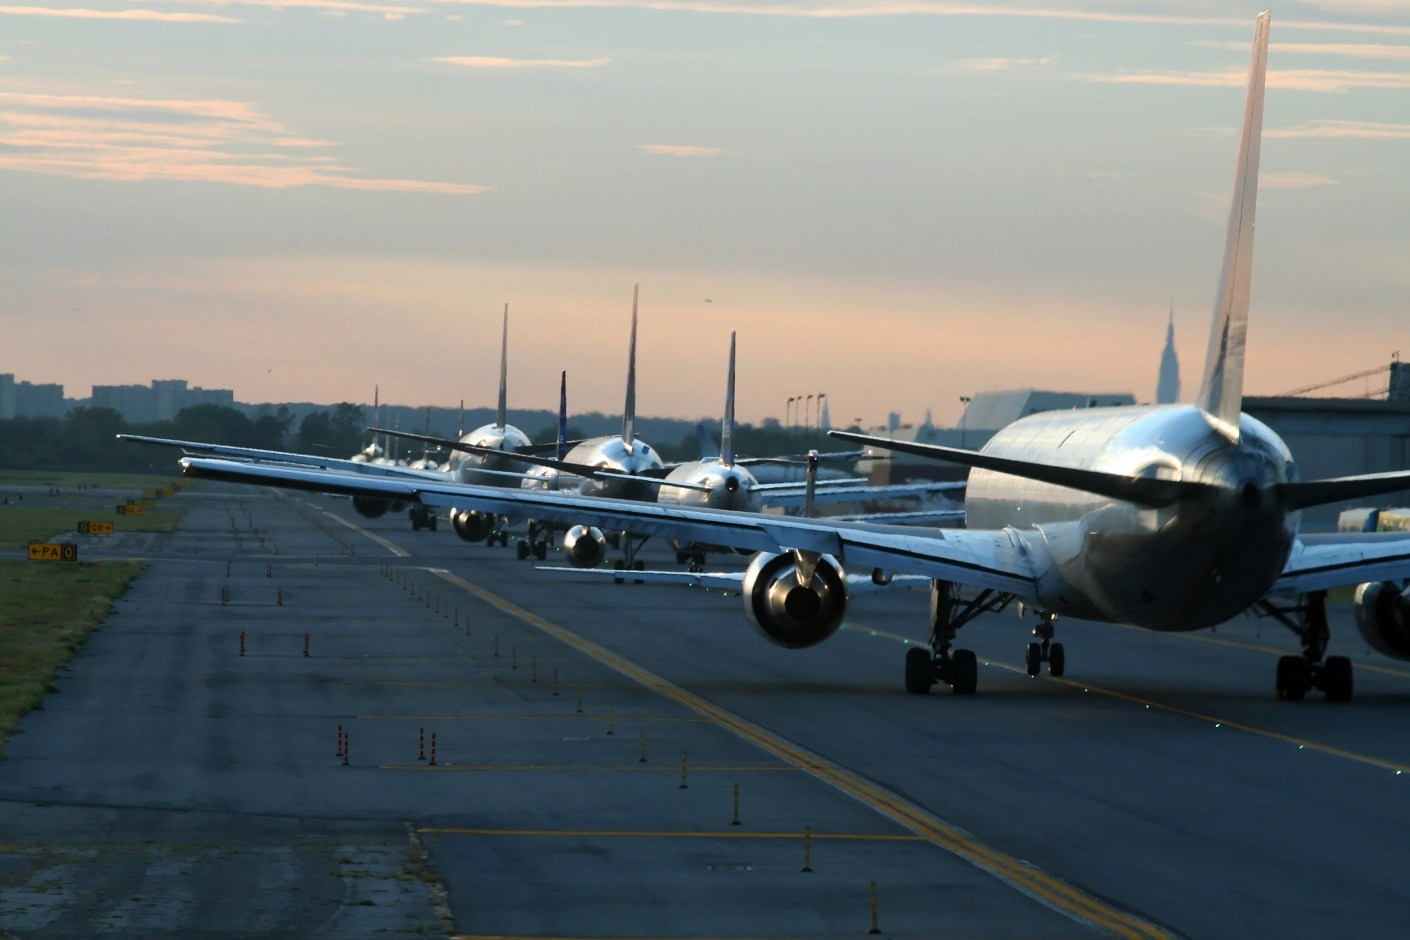 evening traffic at New York JFK airport. Photo by XavierMarchant / Getty Images.